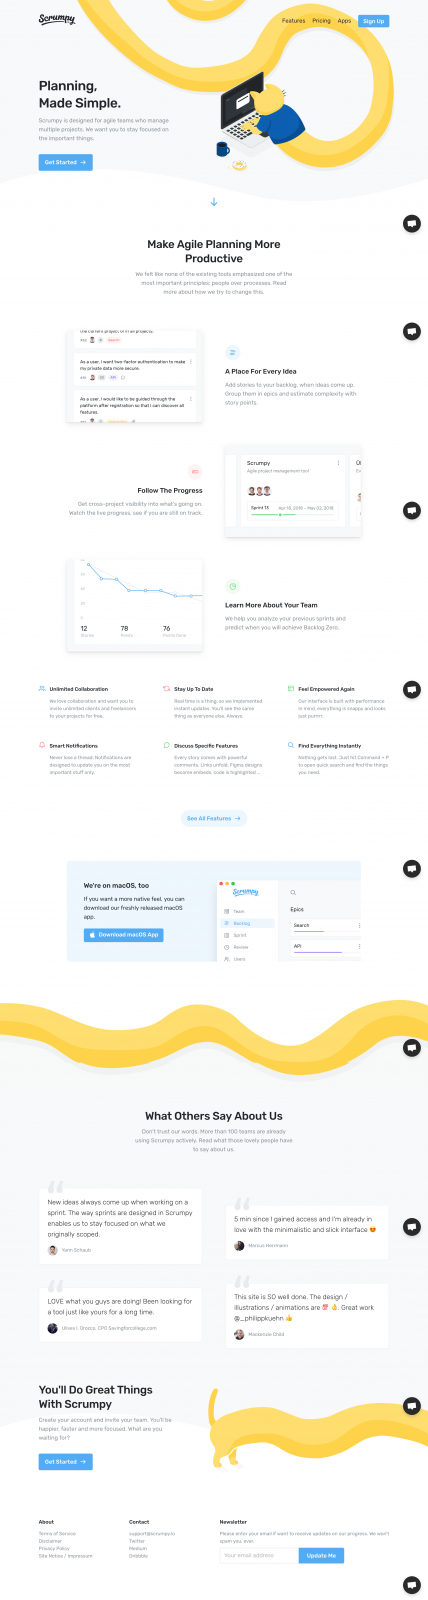 Scrumpy — A Beautiful Project Management Tool for Agile Teams